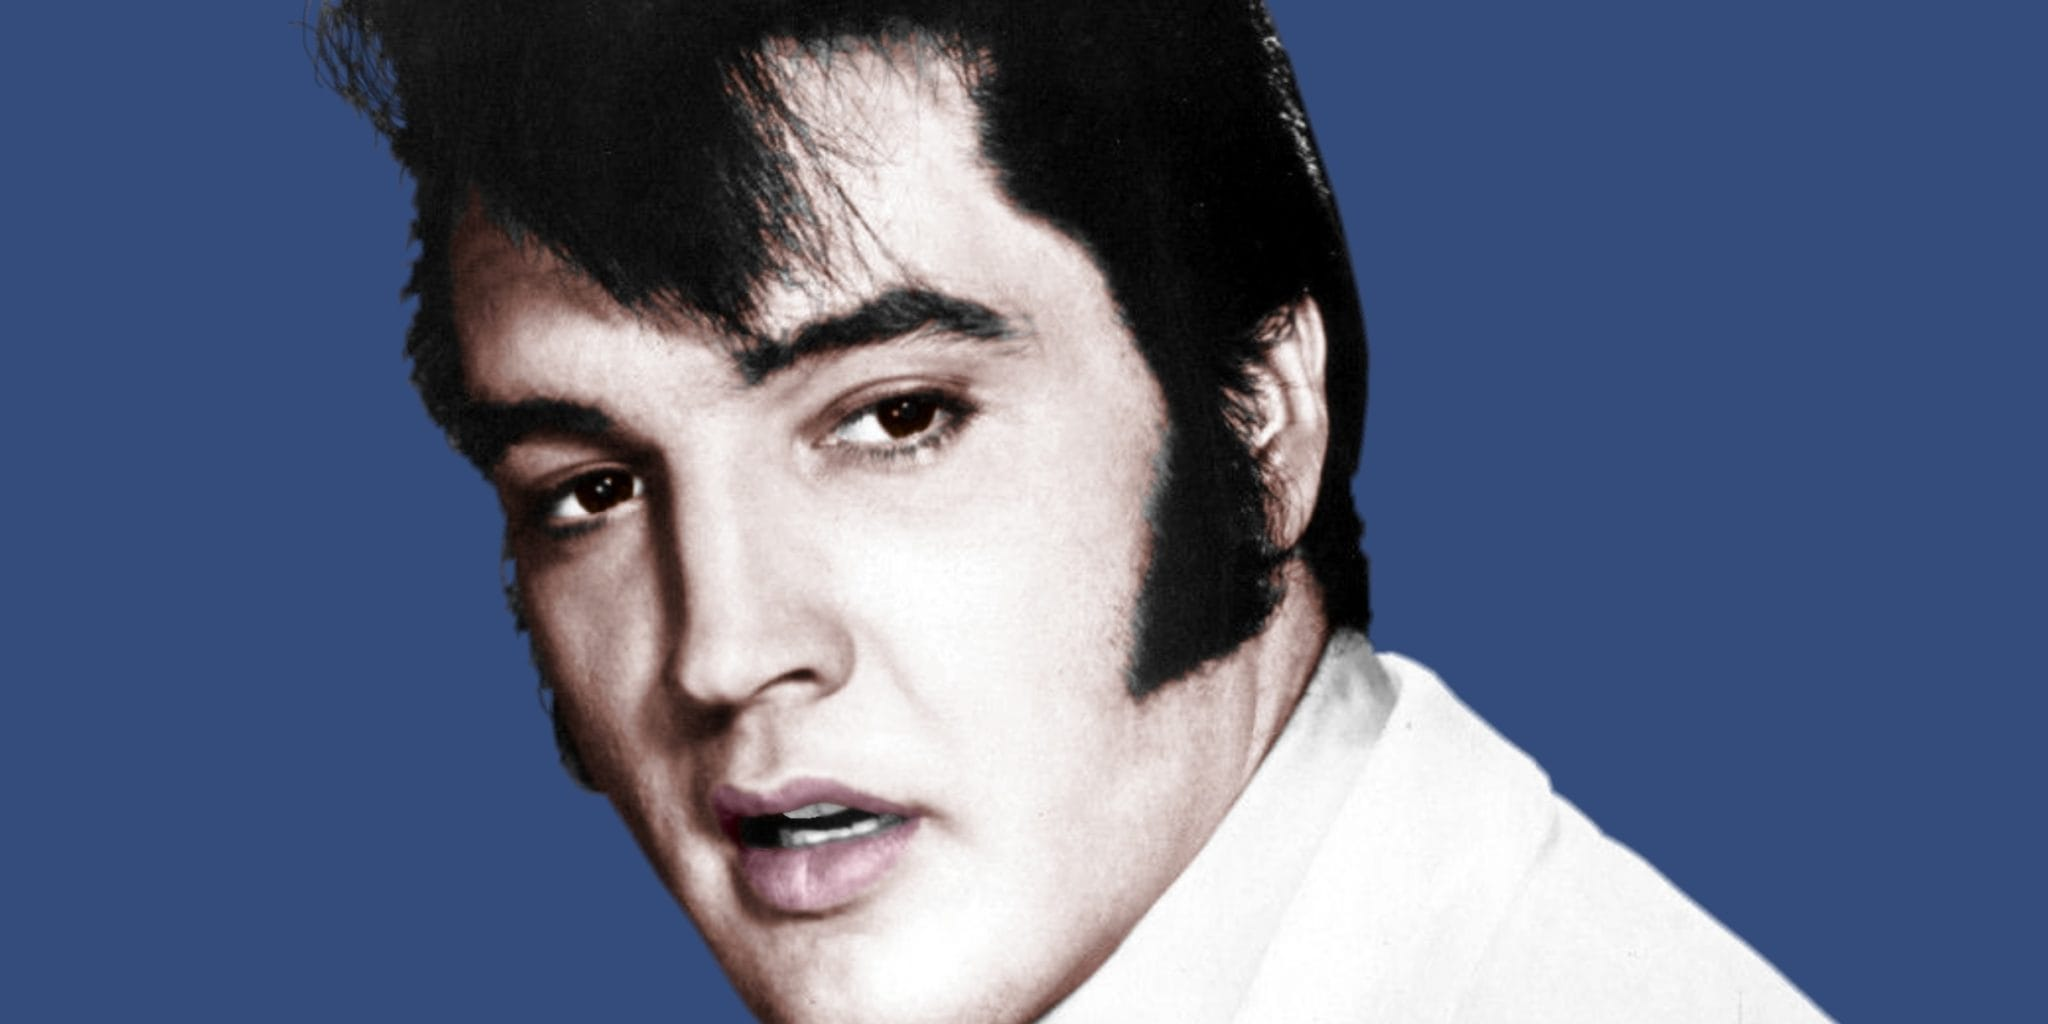 An Elvis Presley on the Extreme Right